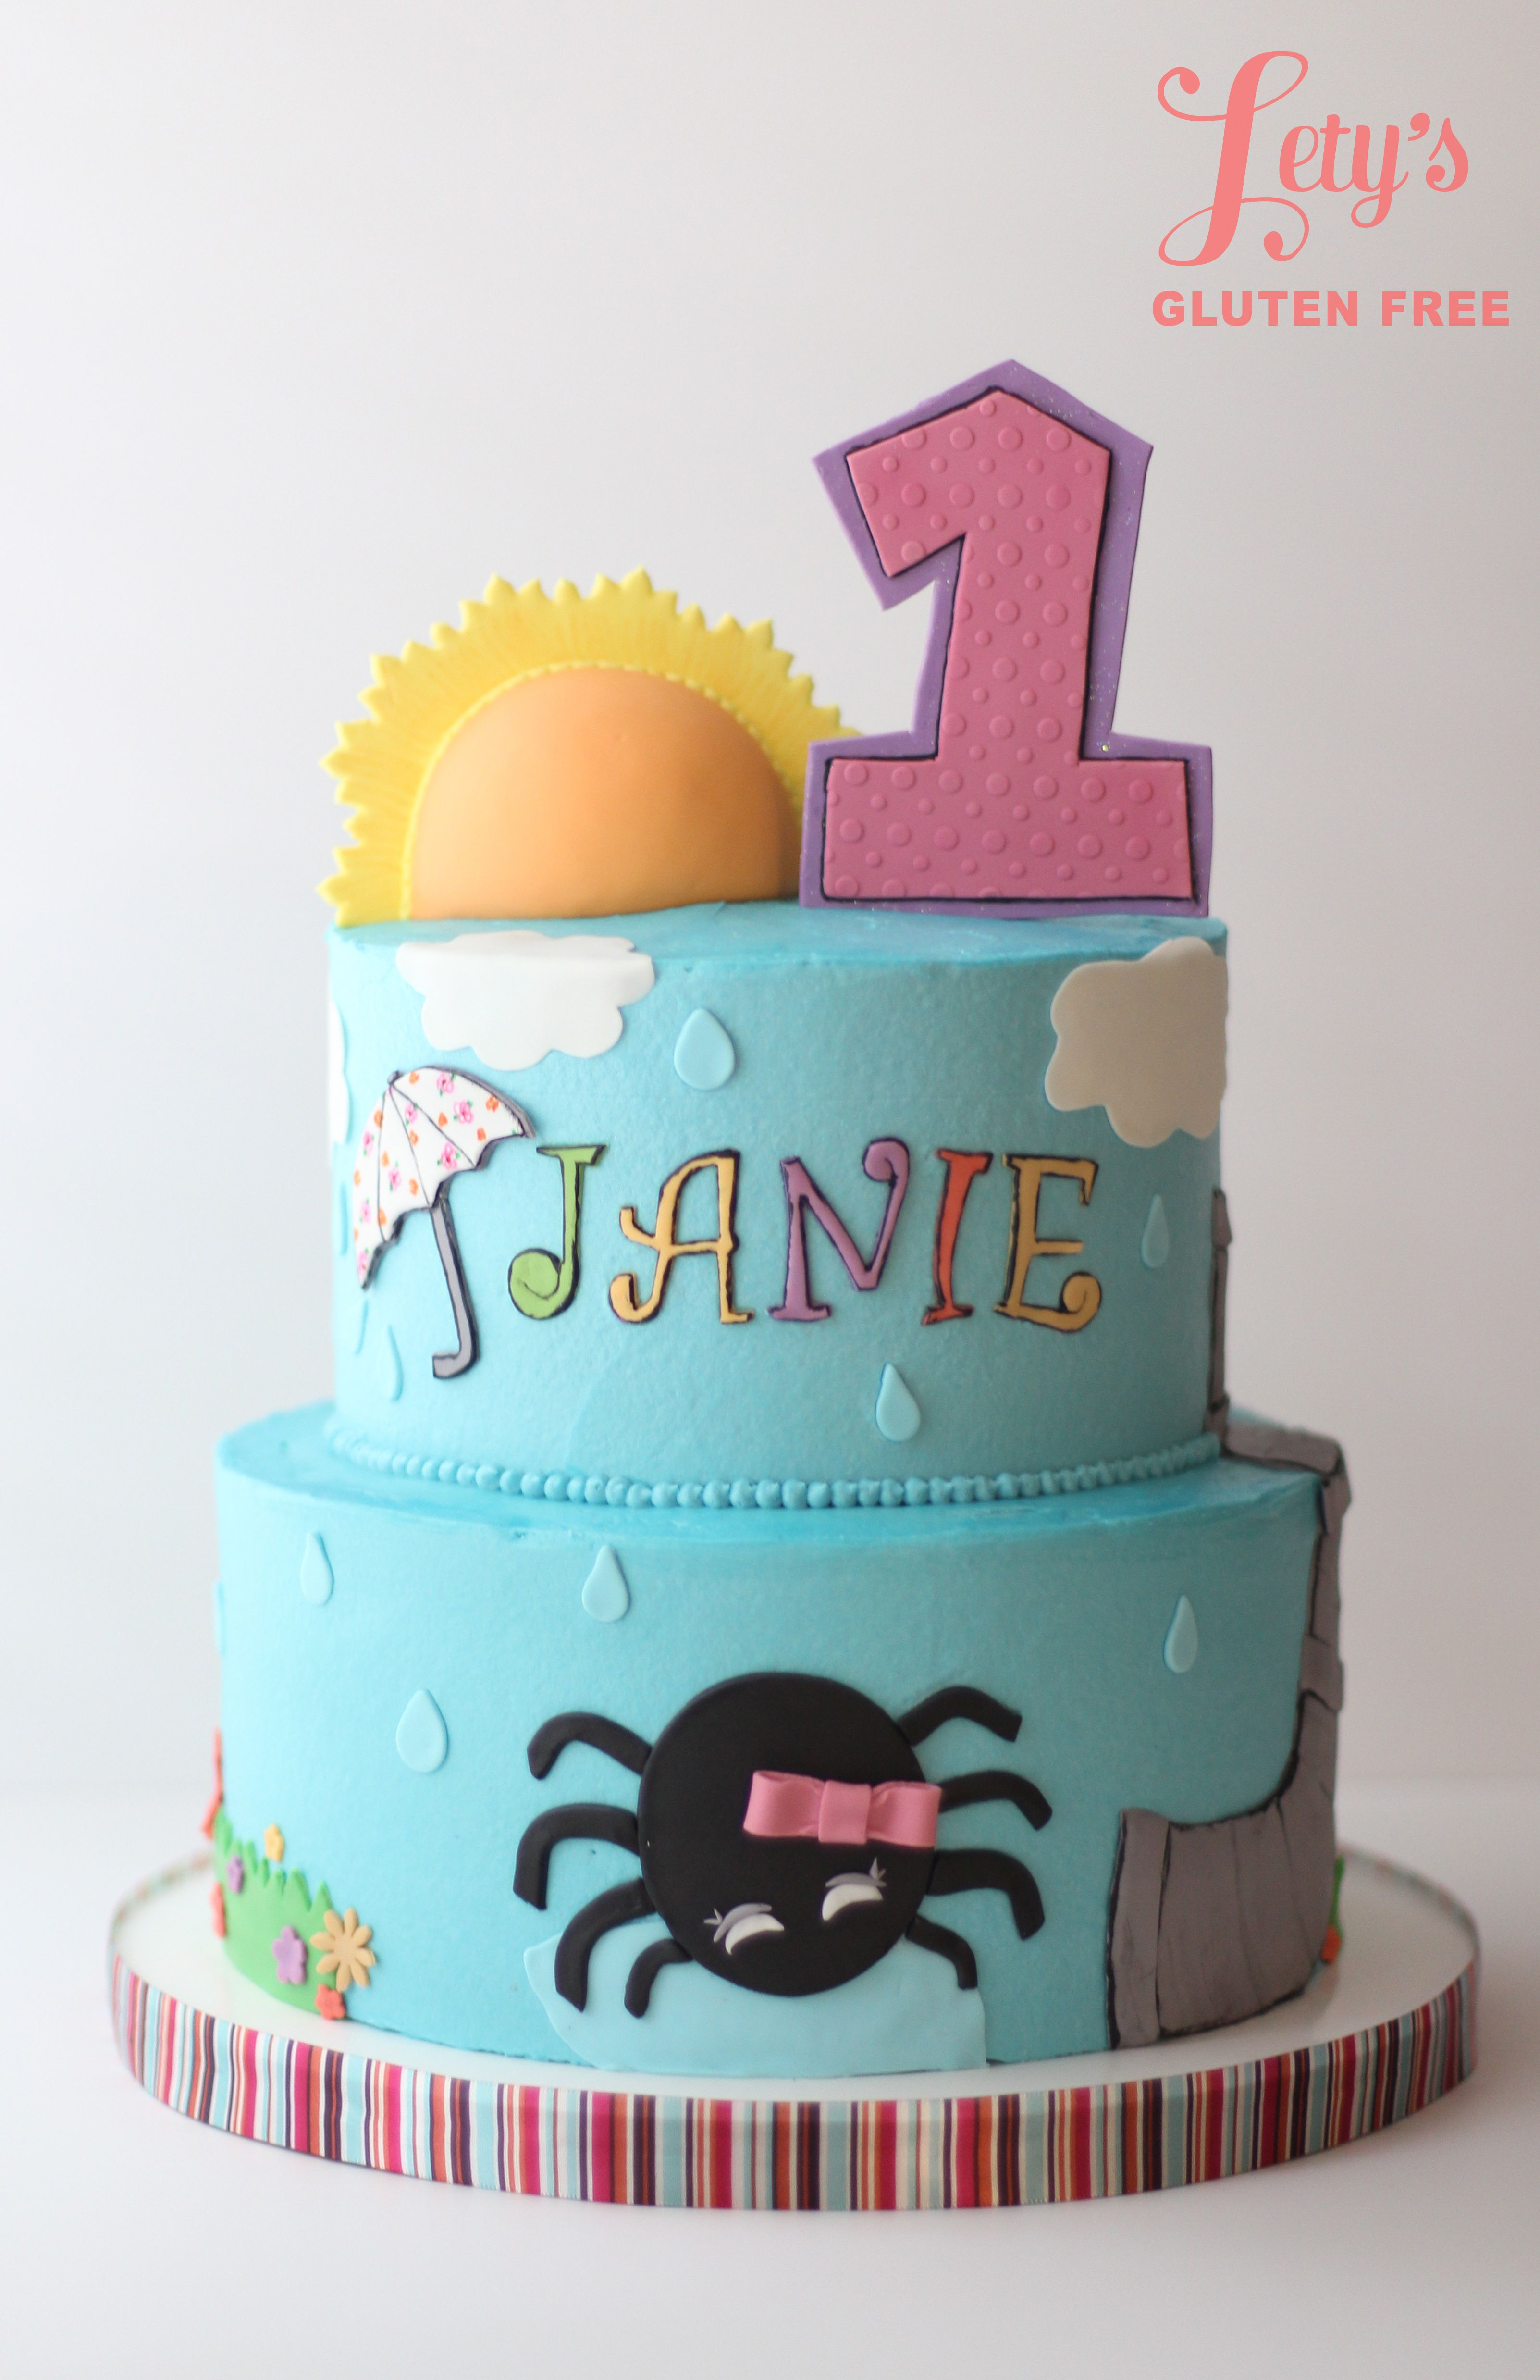 Itsy Bitsy Spider Cake for 1st Birthday Party!! So cute!   *Lety's ...